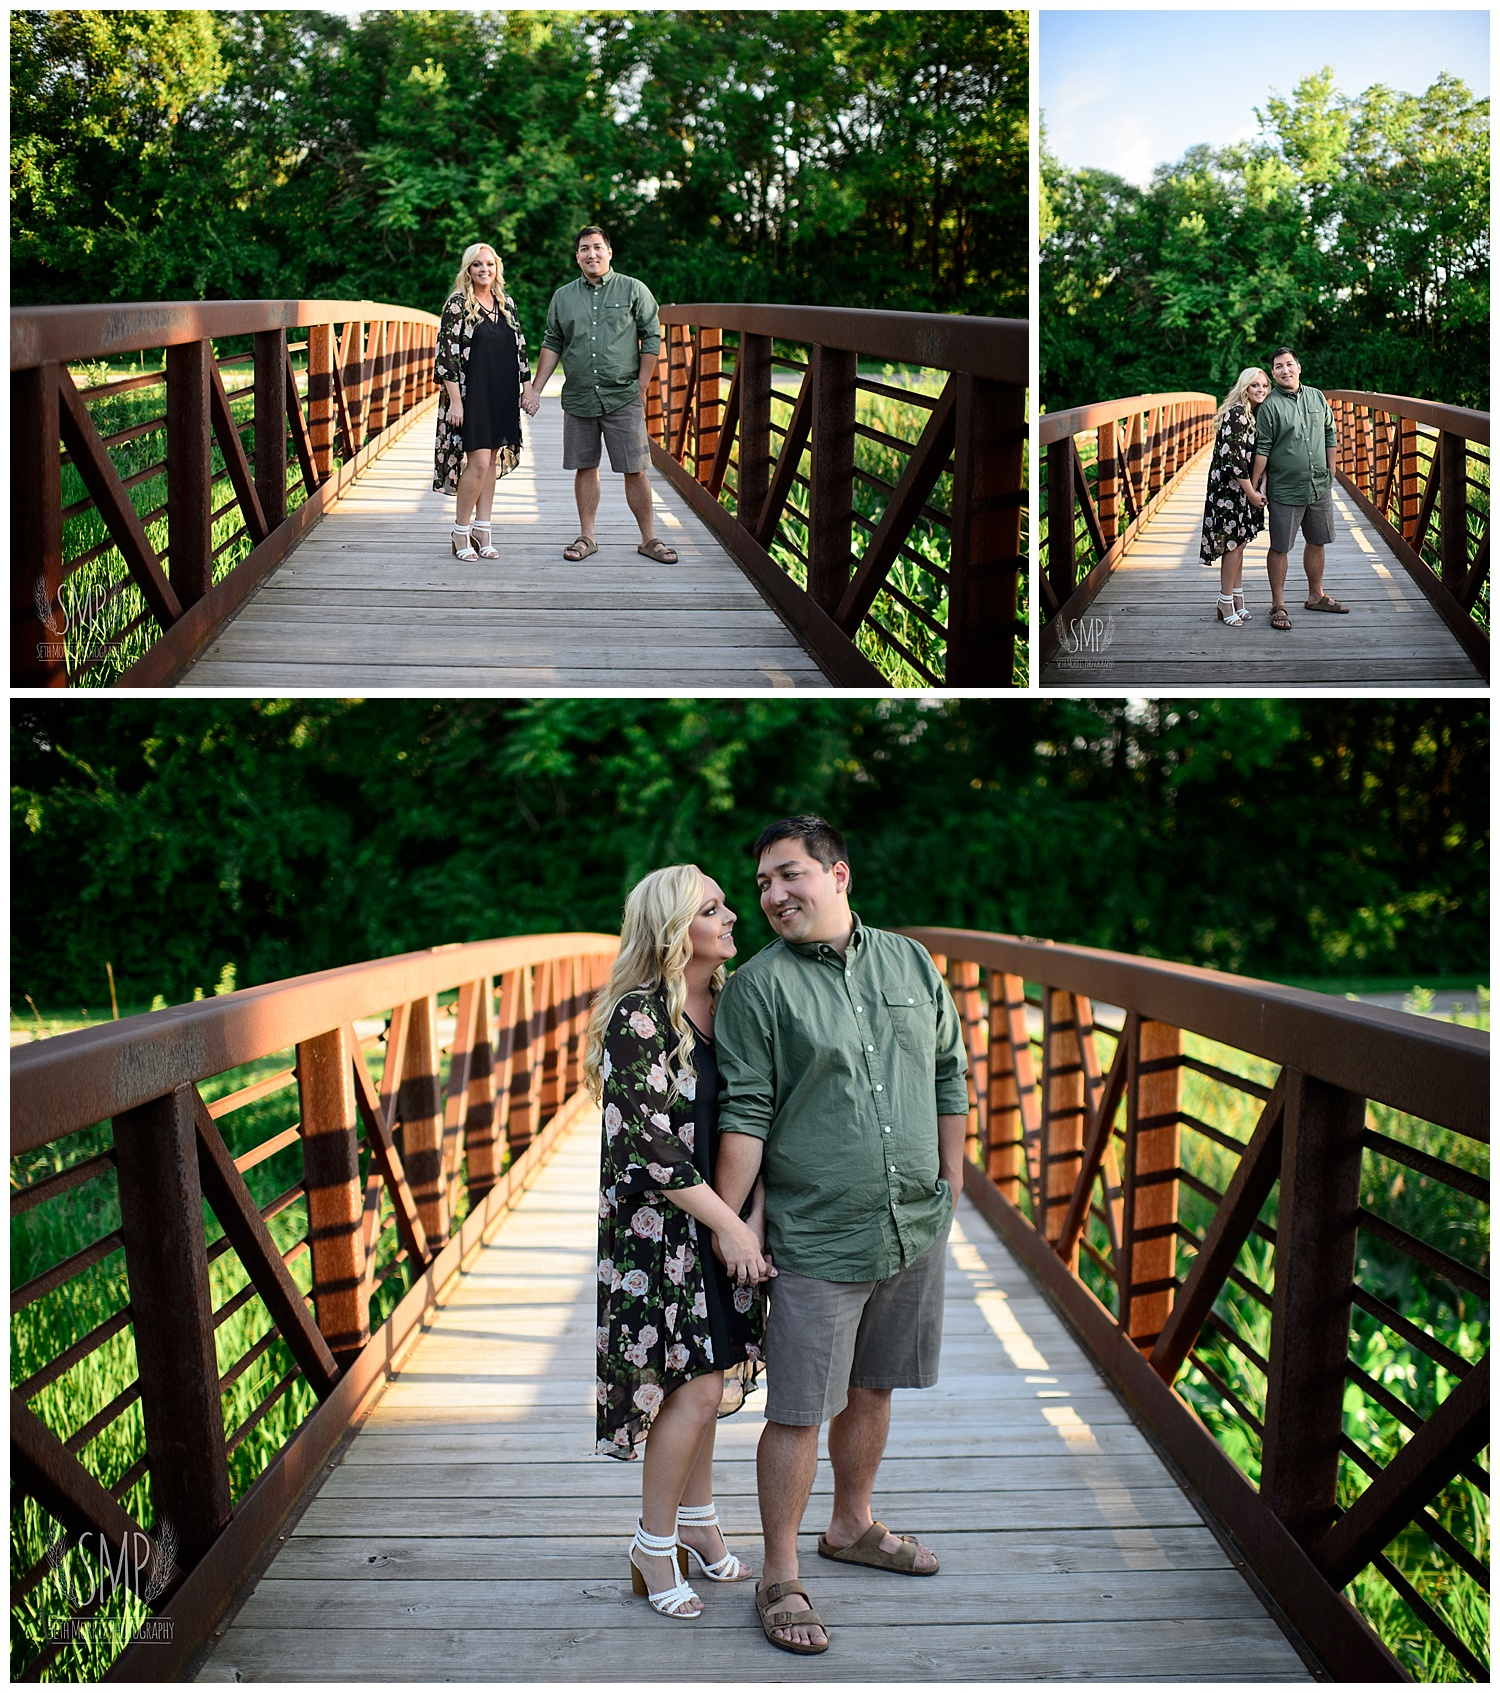 utica-engagement-photographer-downtown-pictures-9.jpg